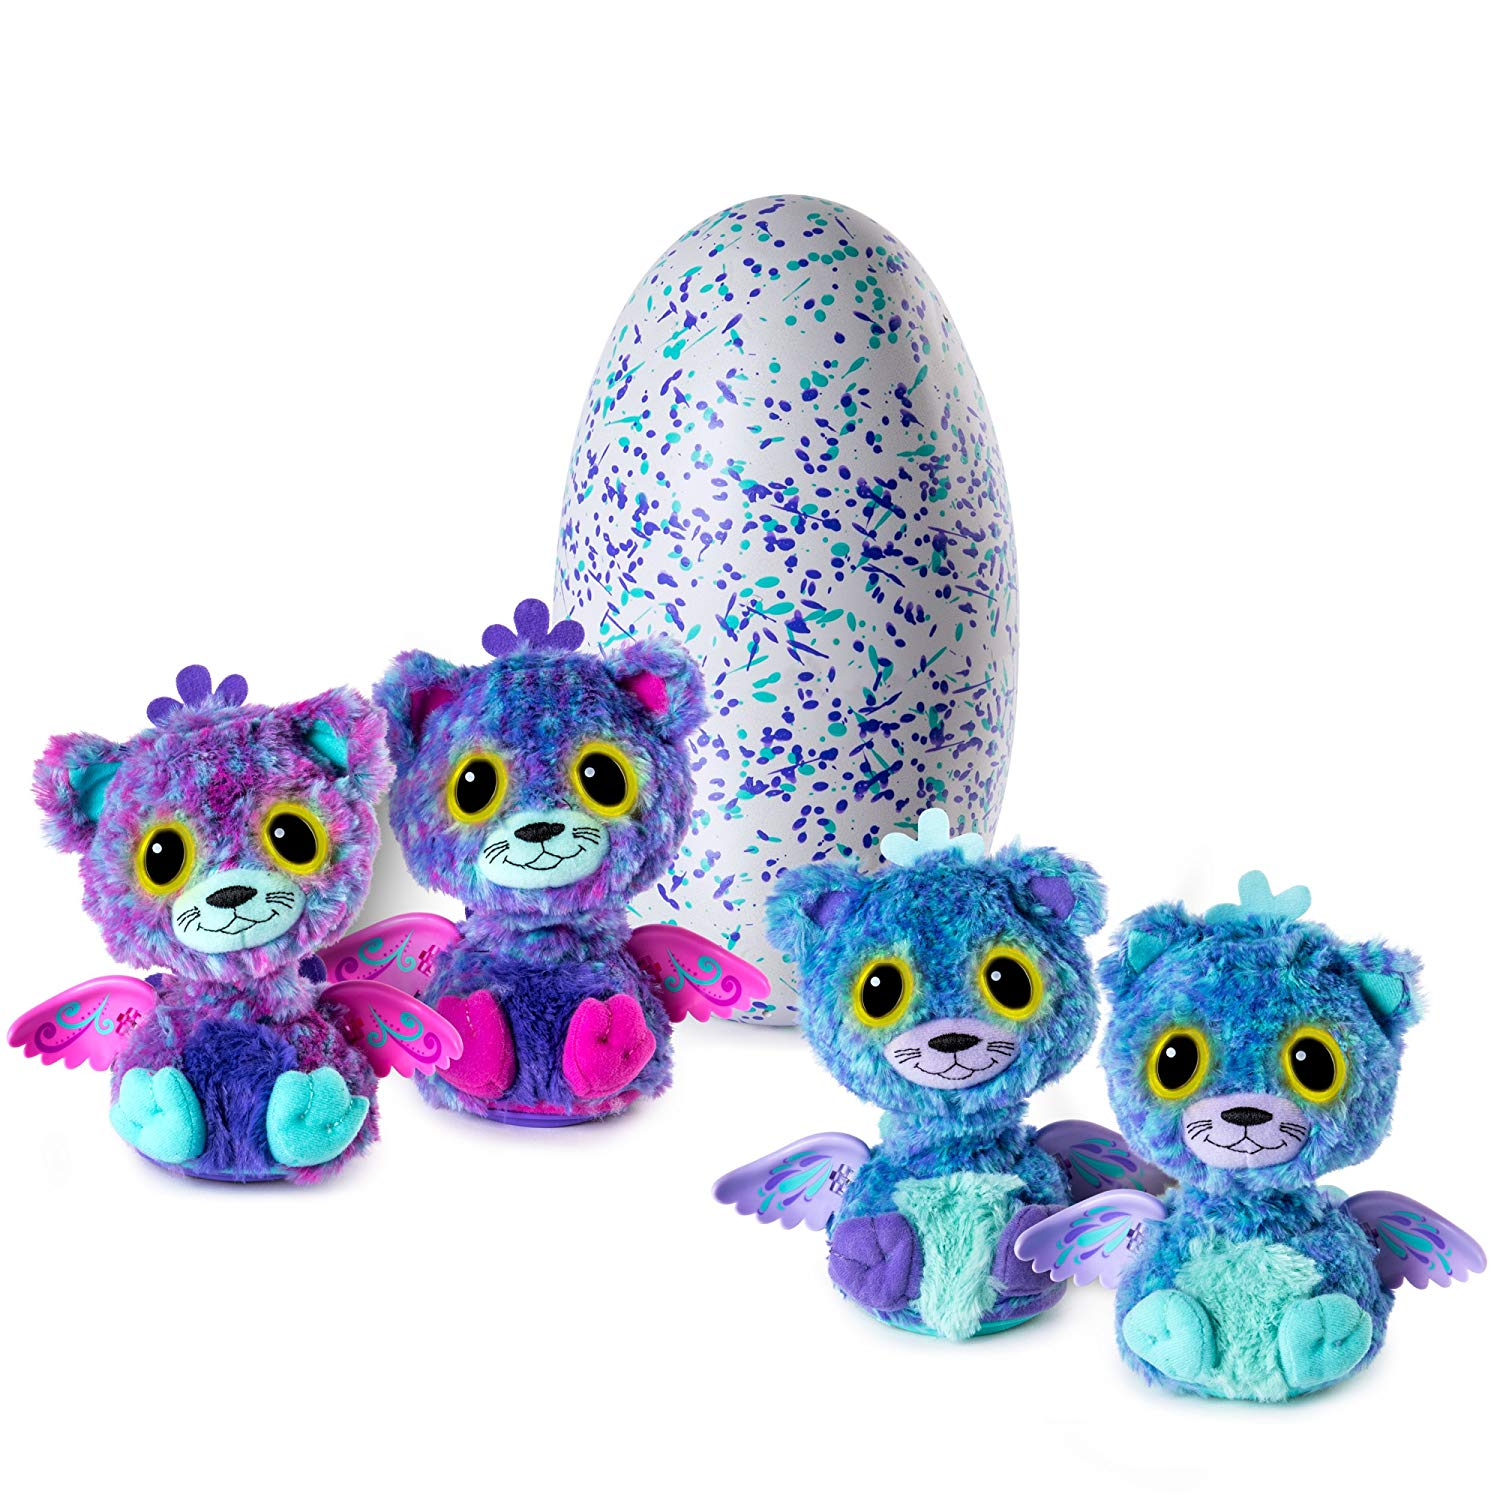 Hatchimals Surprise - Peacat - Hatching Egg with Surprise Twin